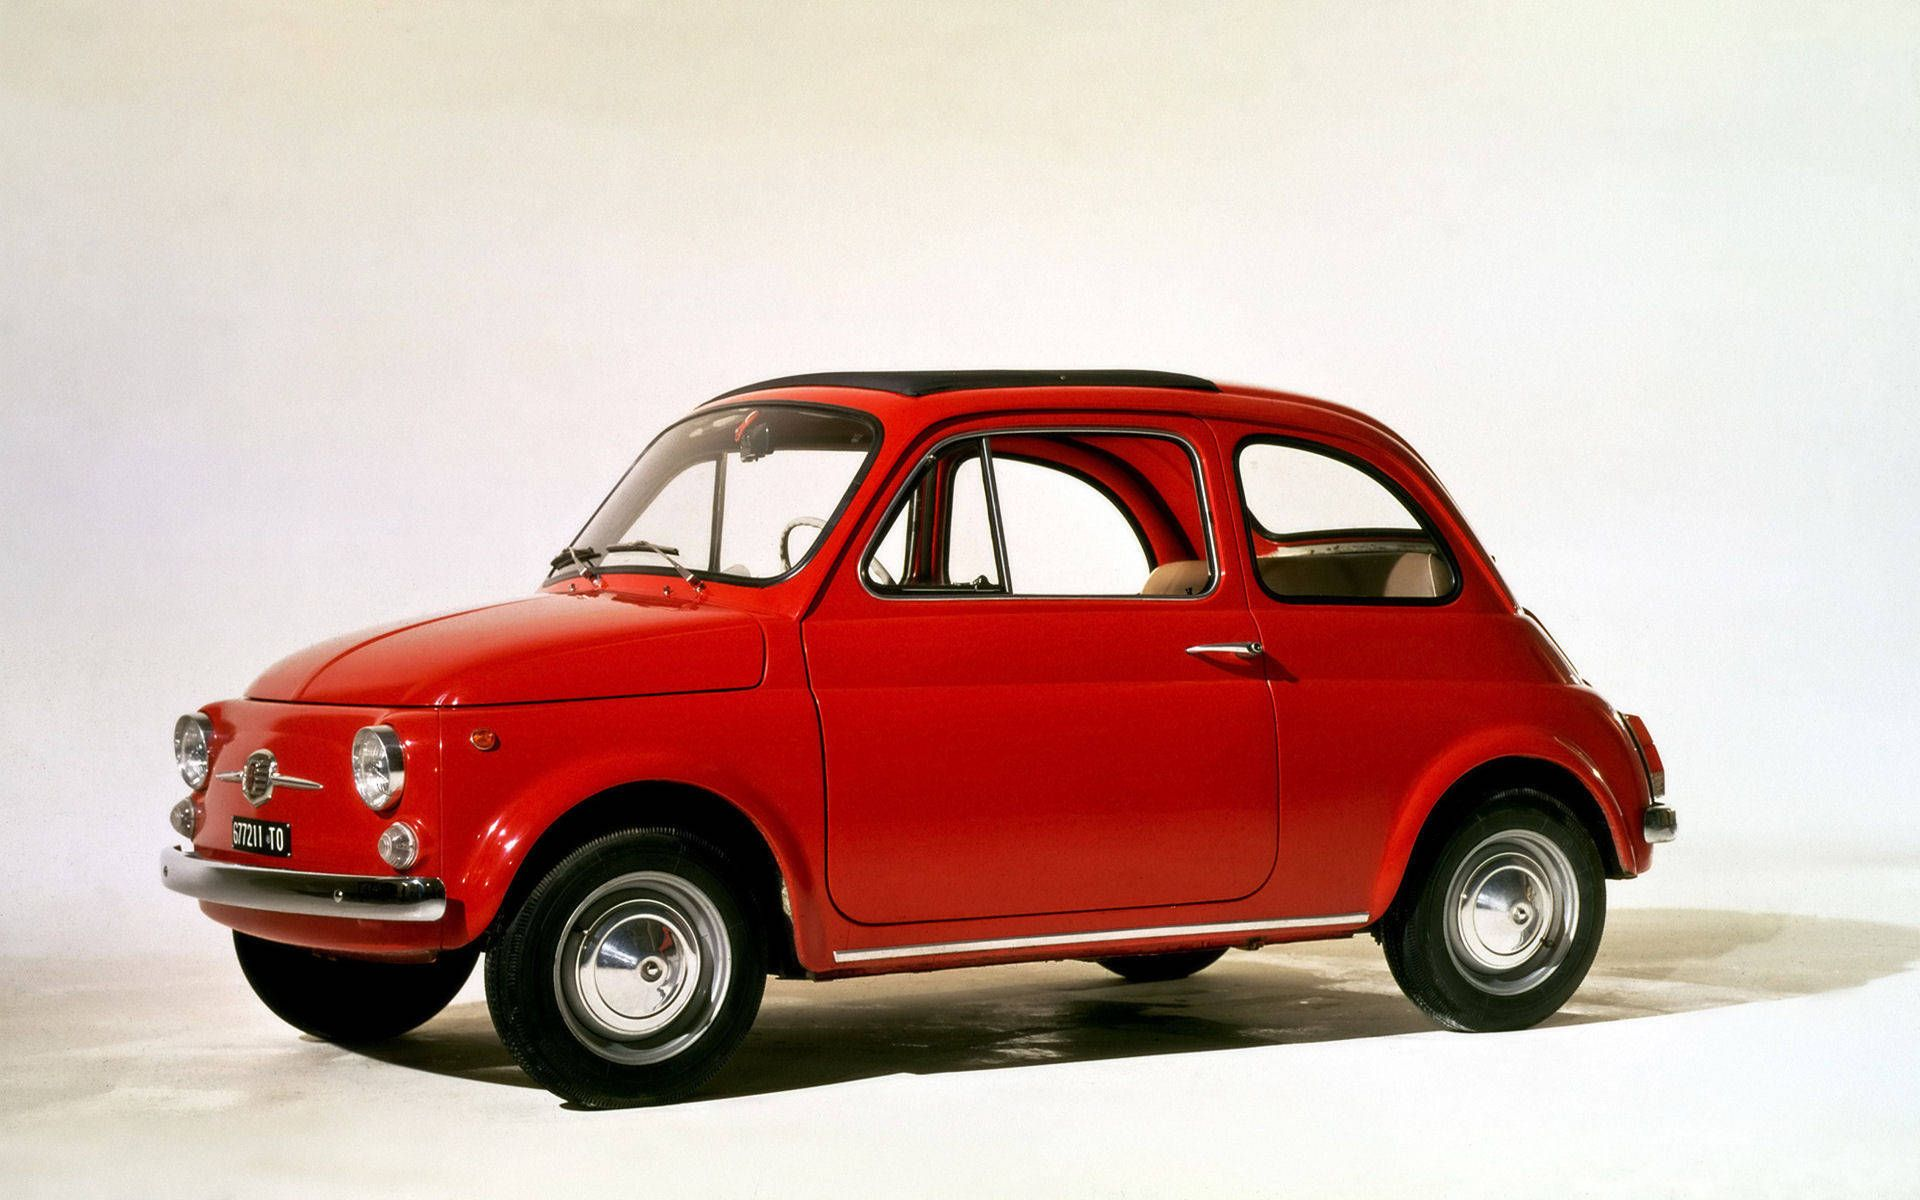 Fiat 500 Vintage One Of The Symbols Of Made In Italy The First Two Door Mini Car Ever Made Featuring The Steel Mo Fiat 500 Fiat 500 Vintage Fiat Cinquecento